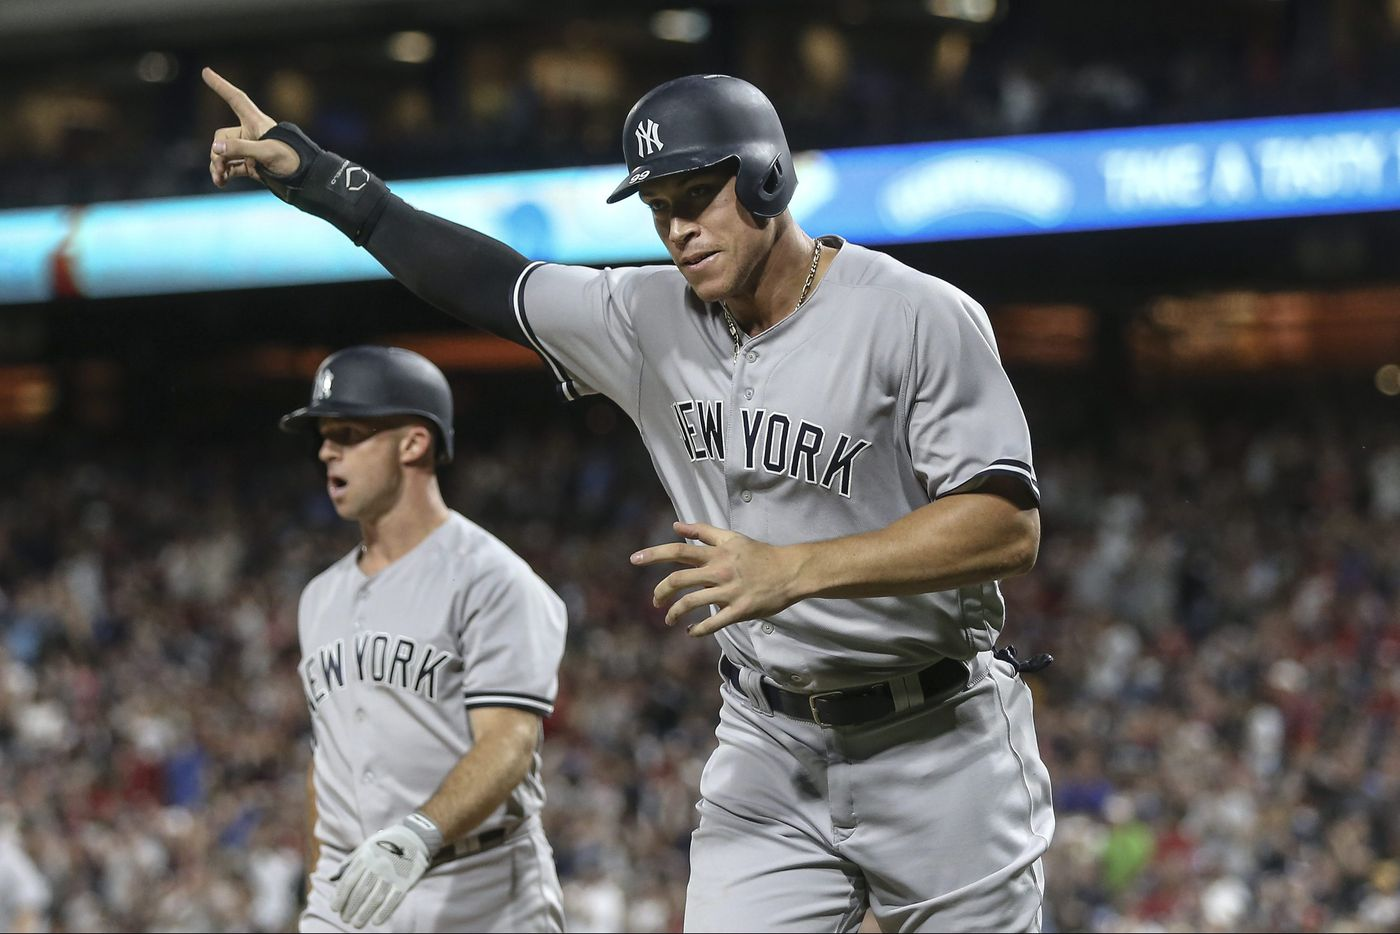 Yankees visit Phillies, but the mystique is long gone | Marcus Hayes